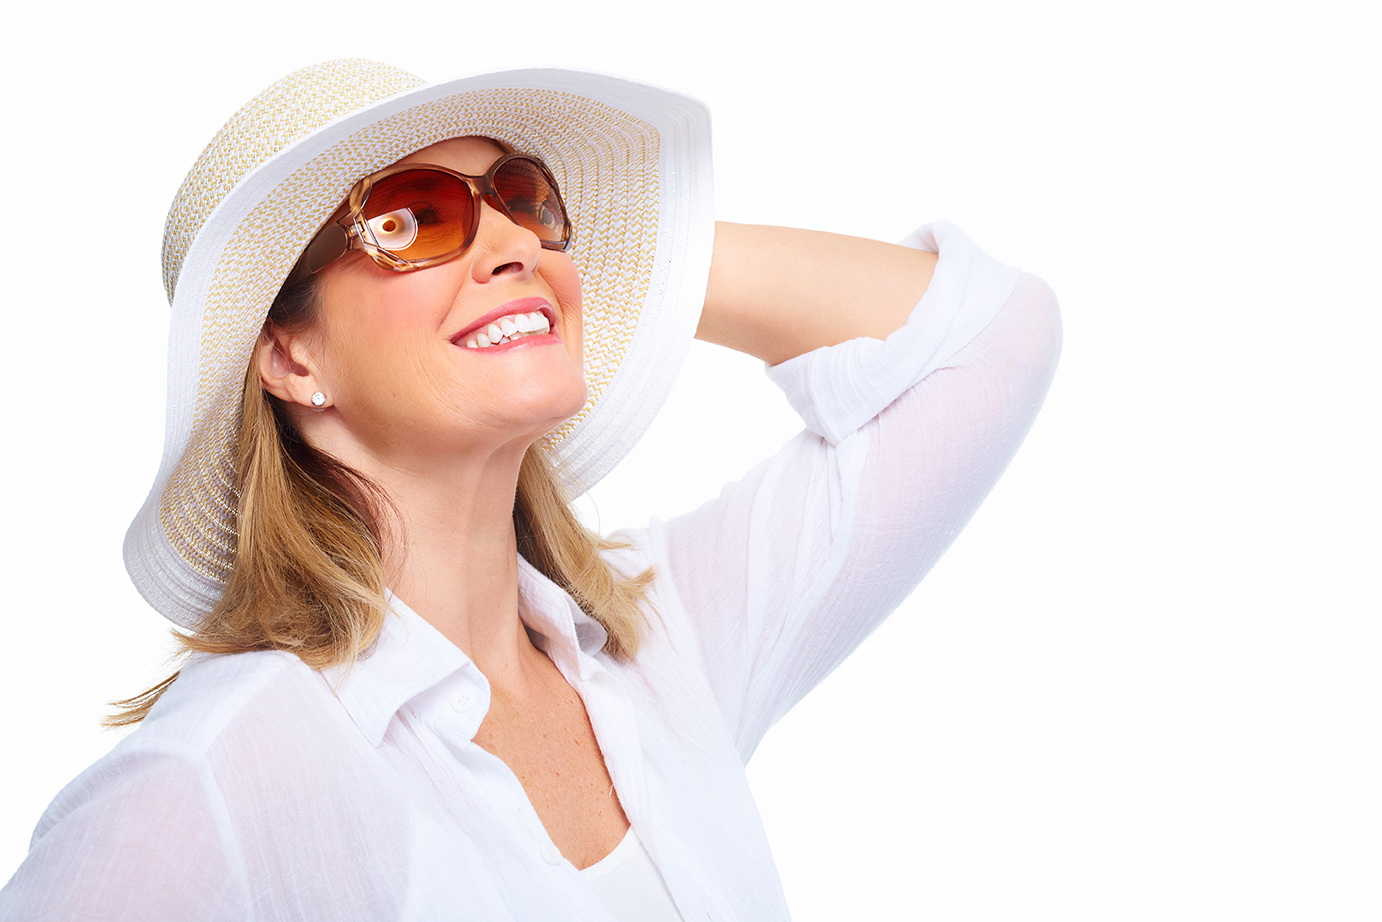 A smiling woman with sunglasses and large sun hat.